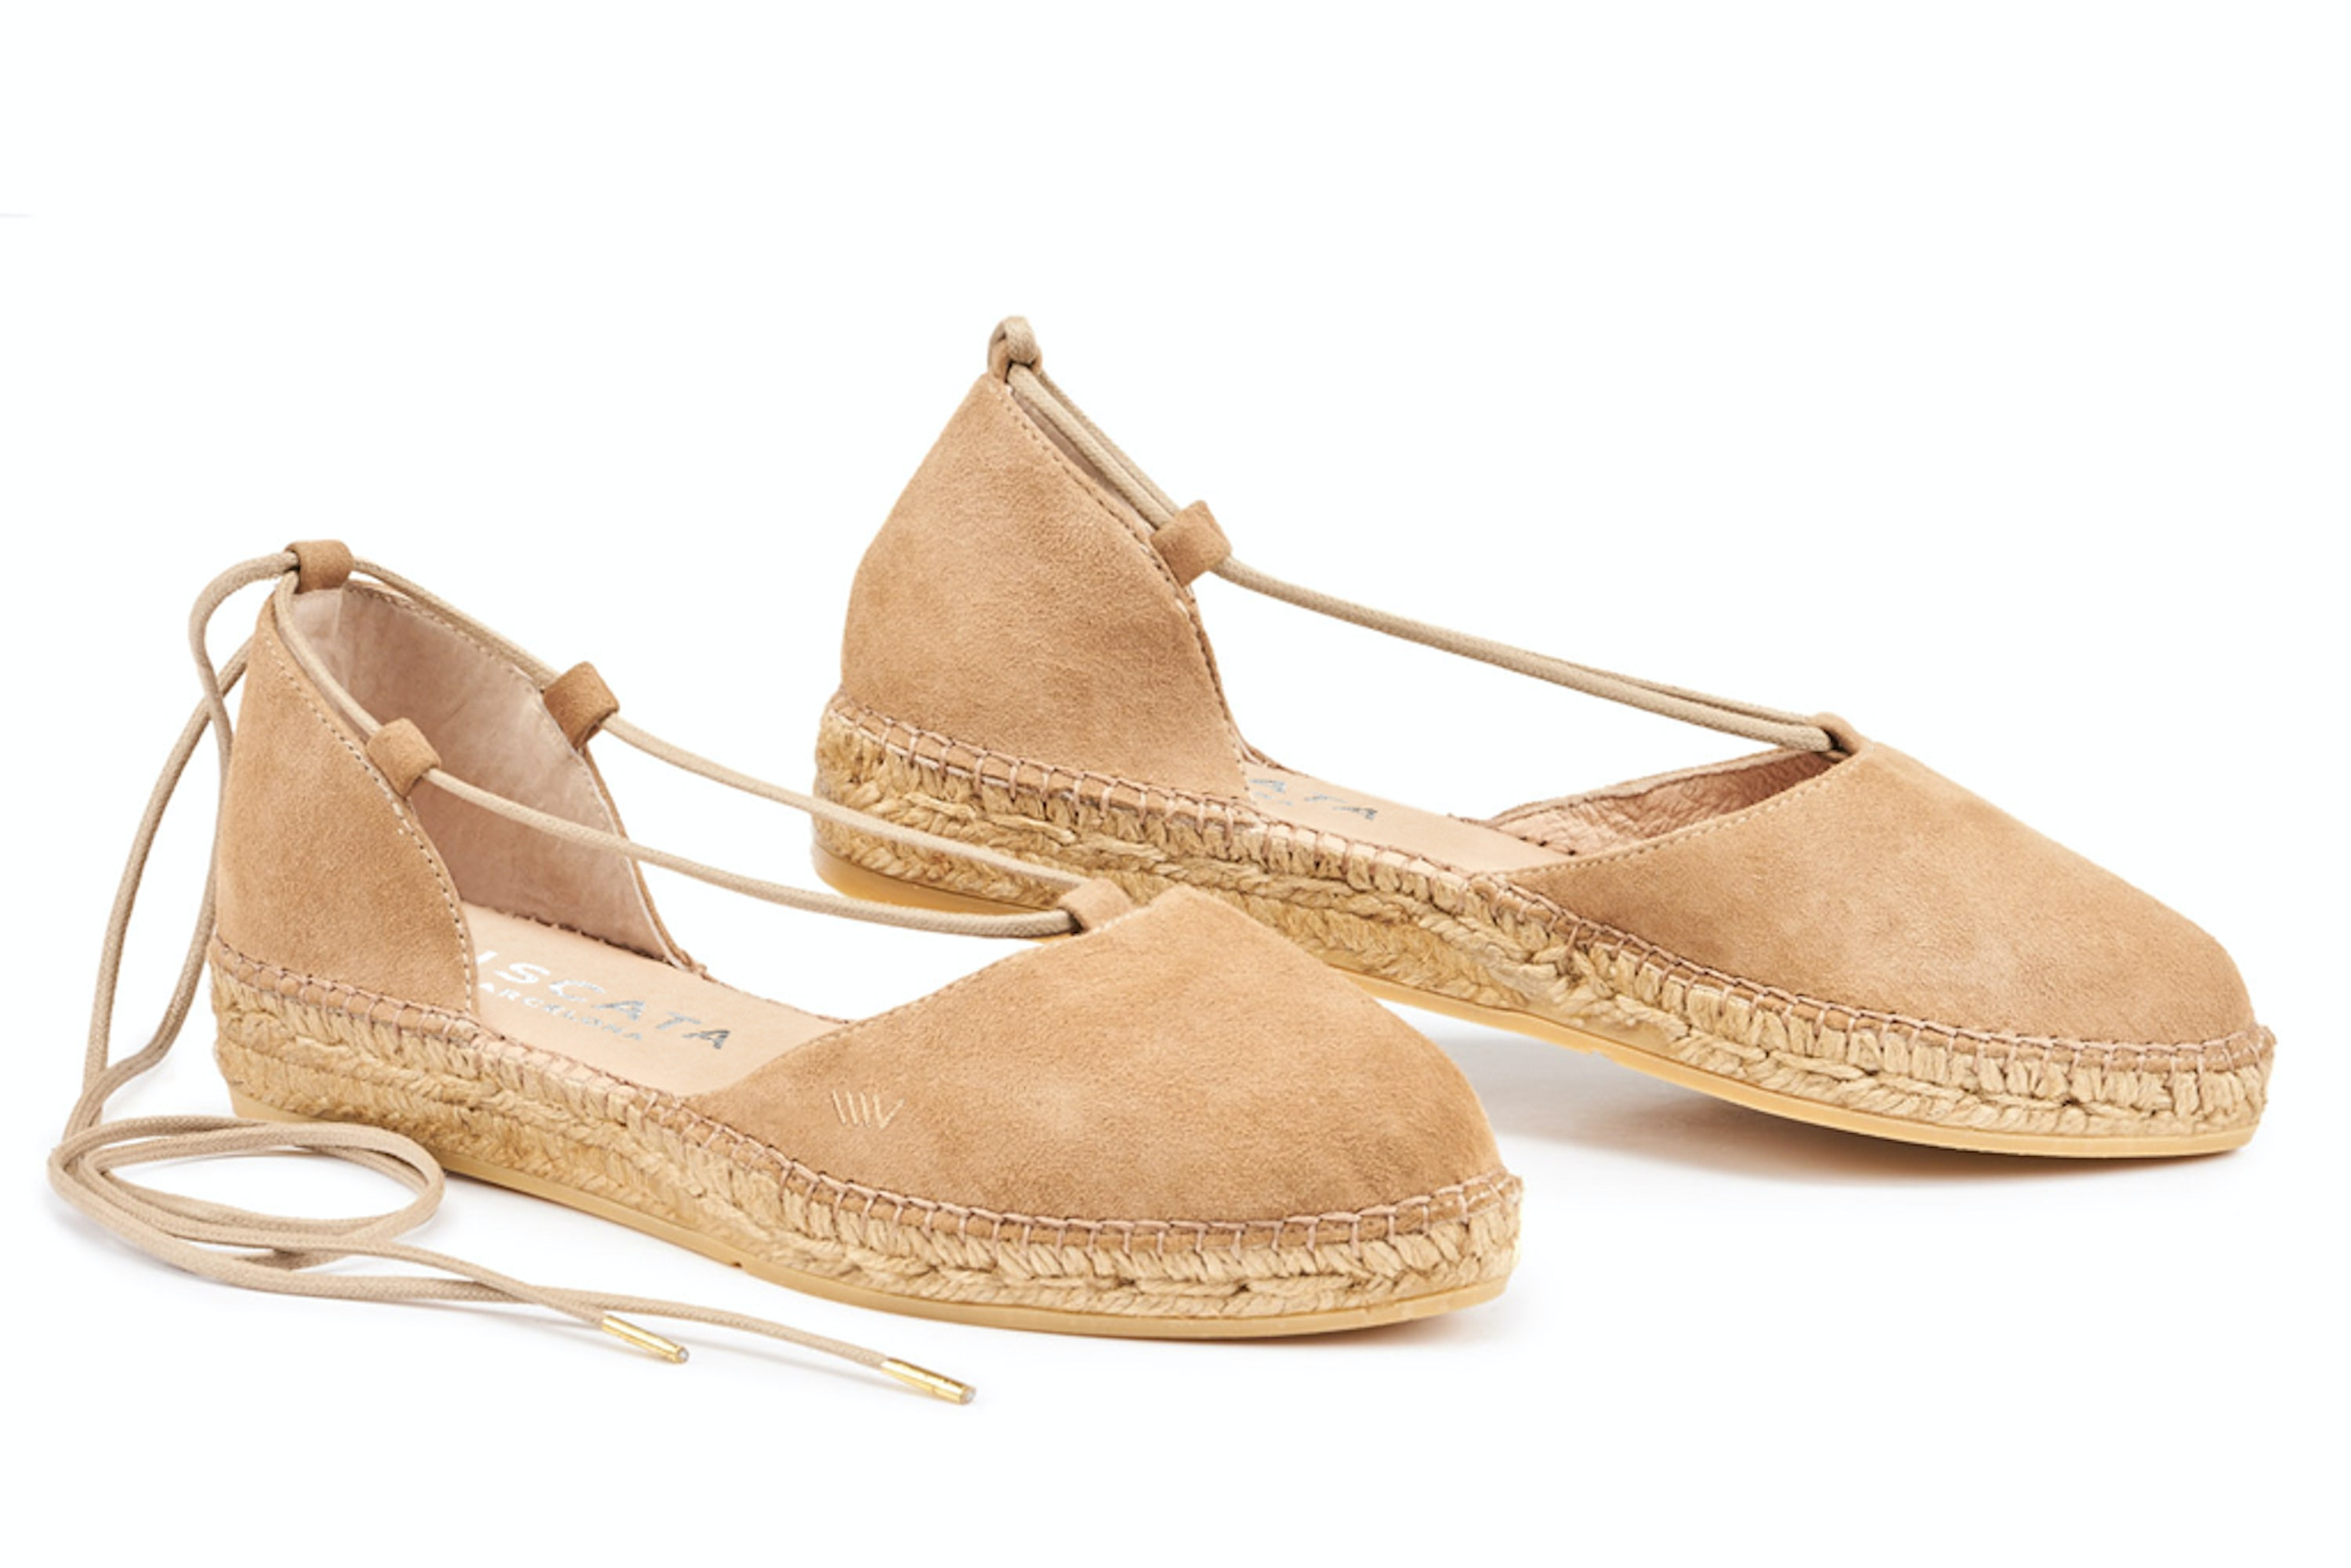 The Viscata Fonda espadrille is chic and easy to walk in.